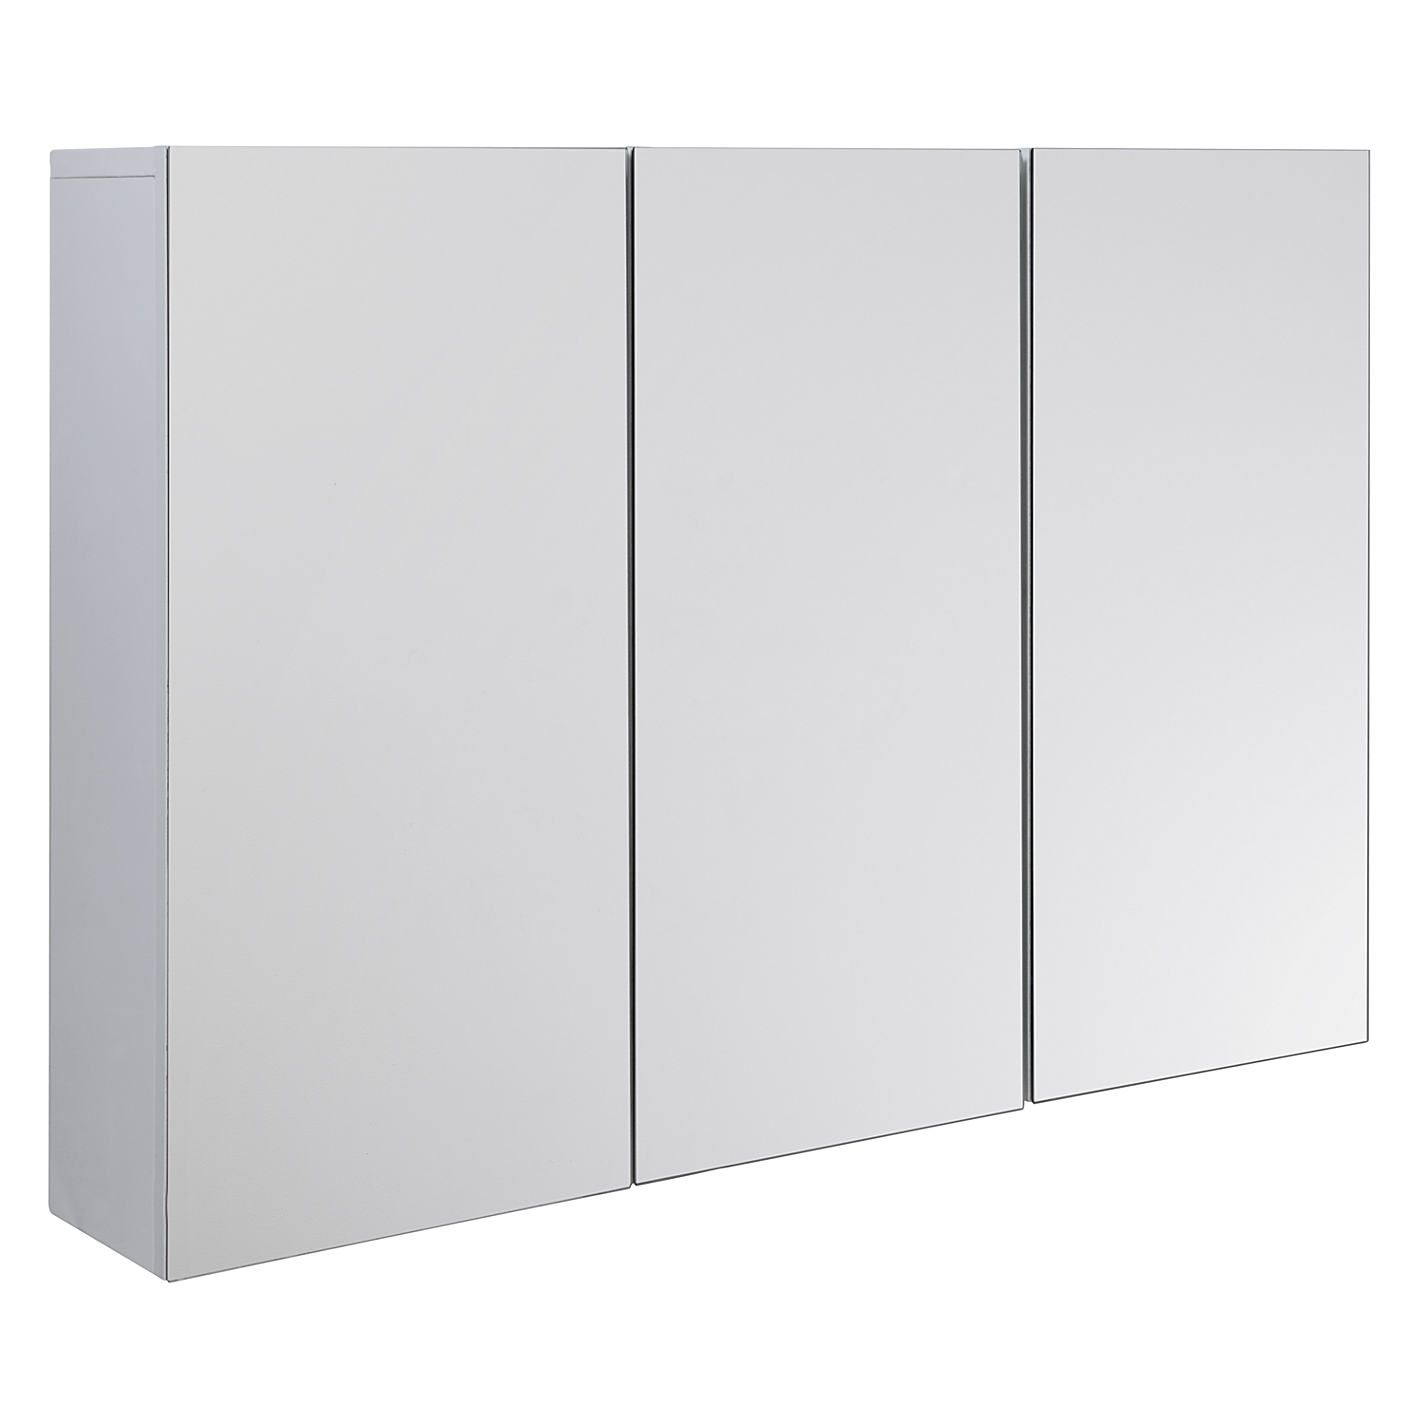 Buy john lewis gloss triple mirrored cabinet white from our